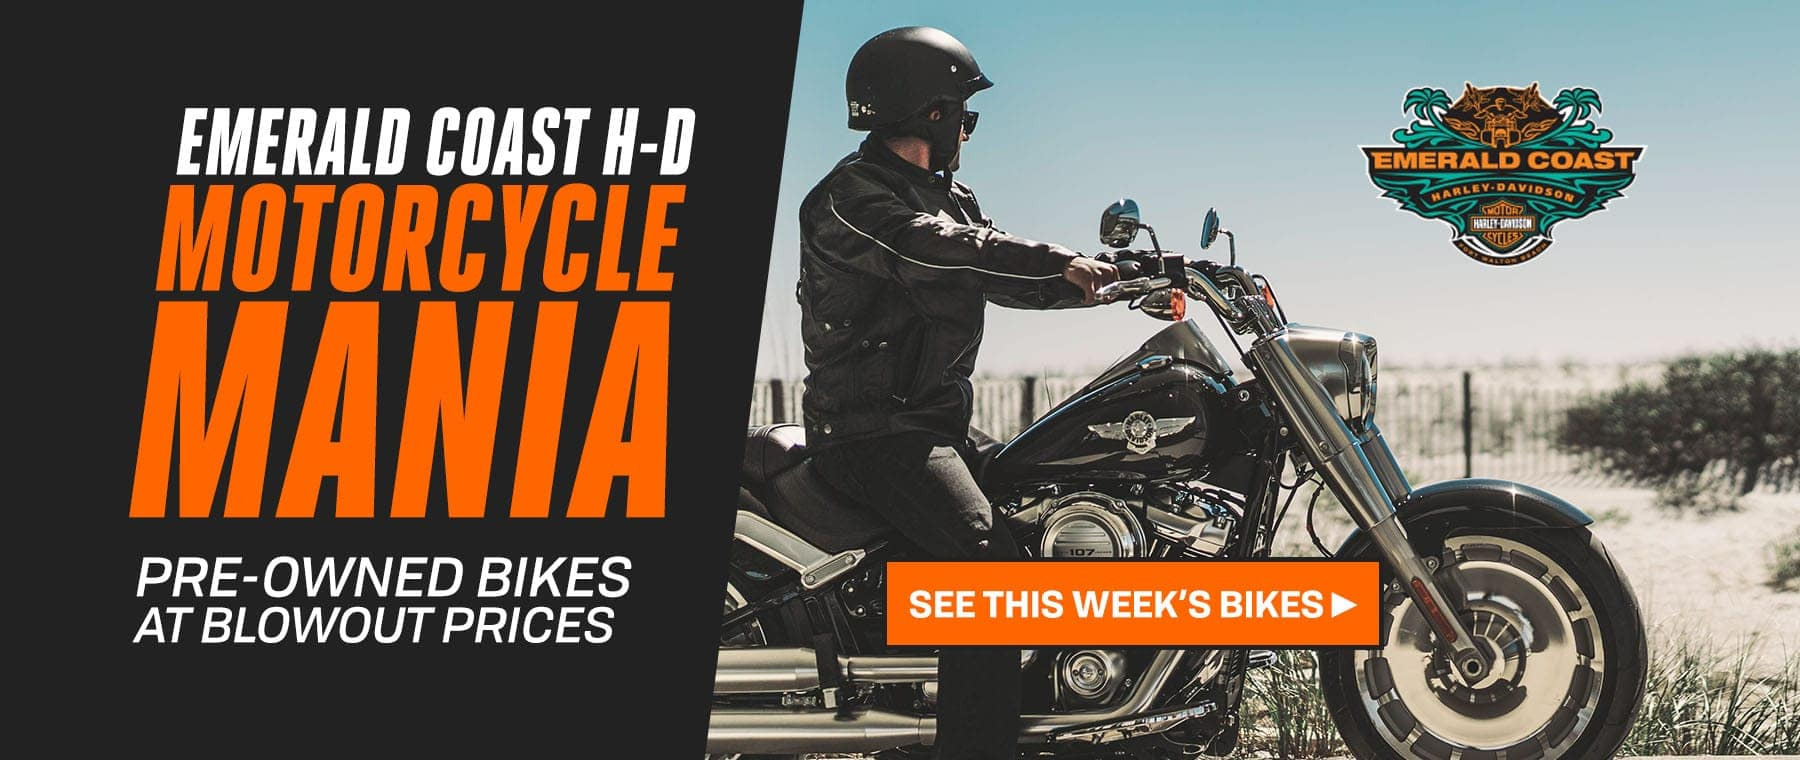 echd-banner-graphicsmotorcycle-mania